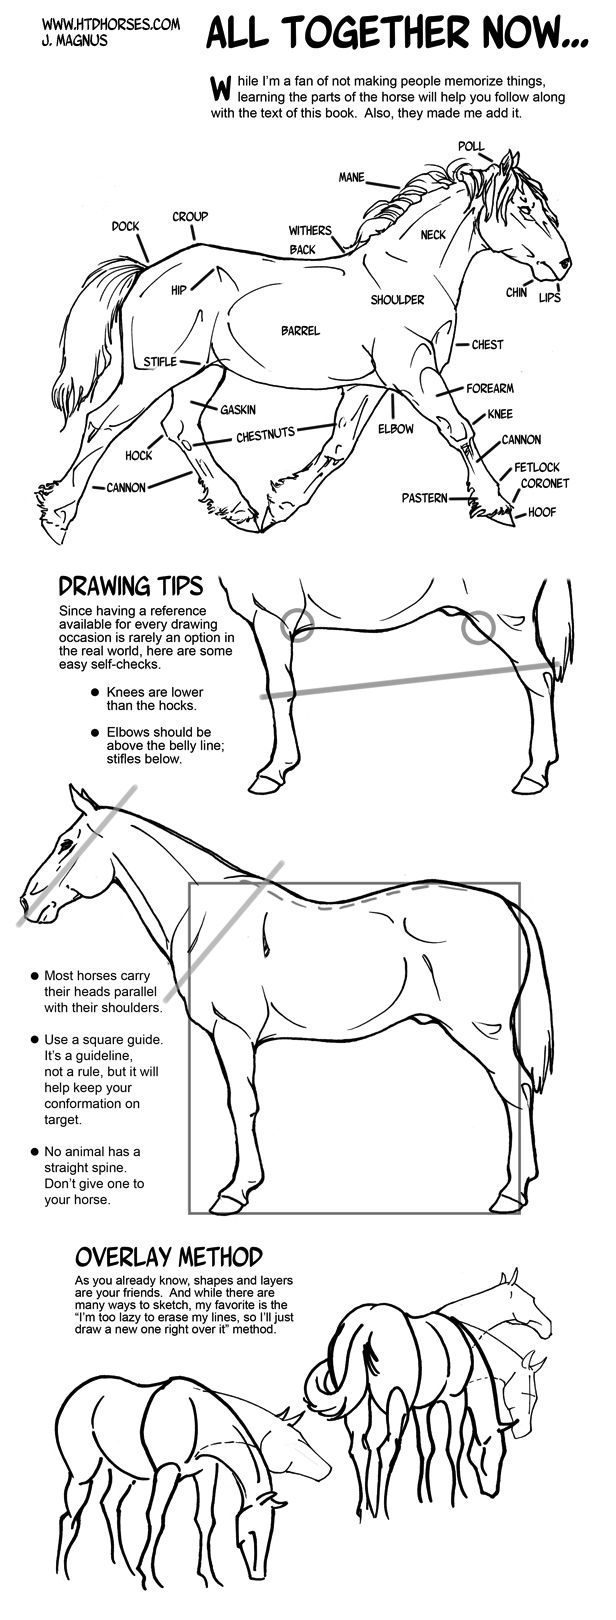 Horse Anatomy Part III - All Together Now by *sketcherjak on deviantART